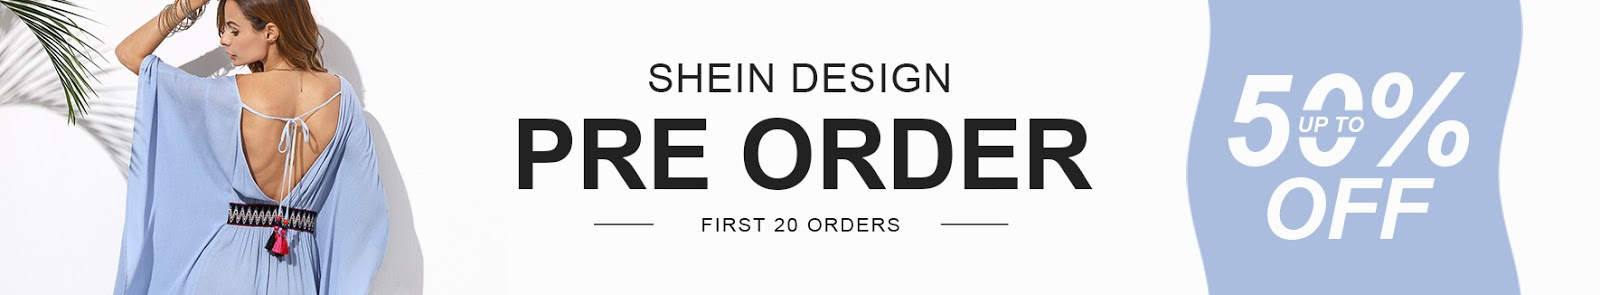 Good news for Shein lovers - free shipping!